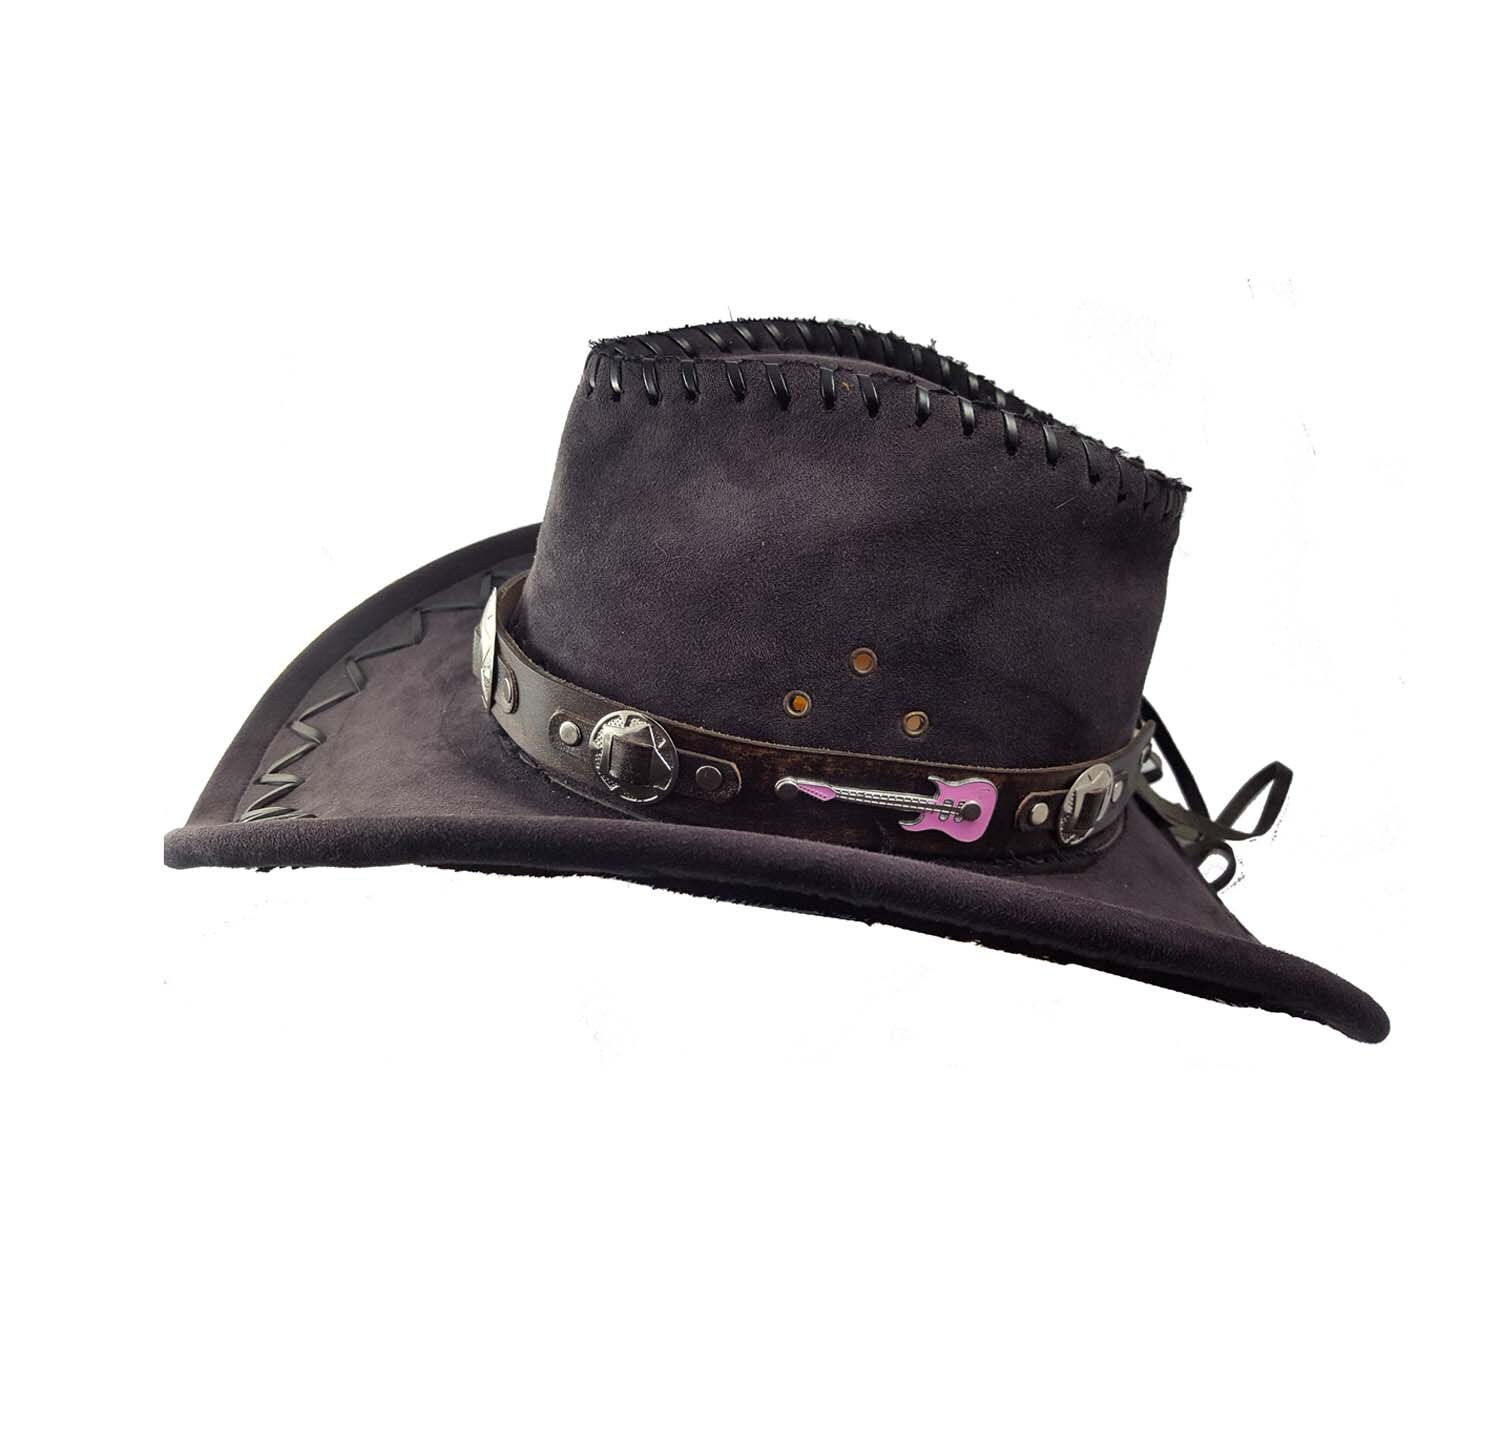 5c65282767d Brown leather cowboy hat band Western hat band guitar hat